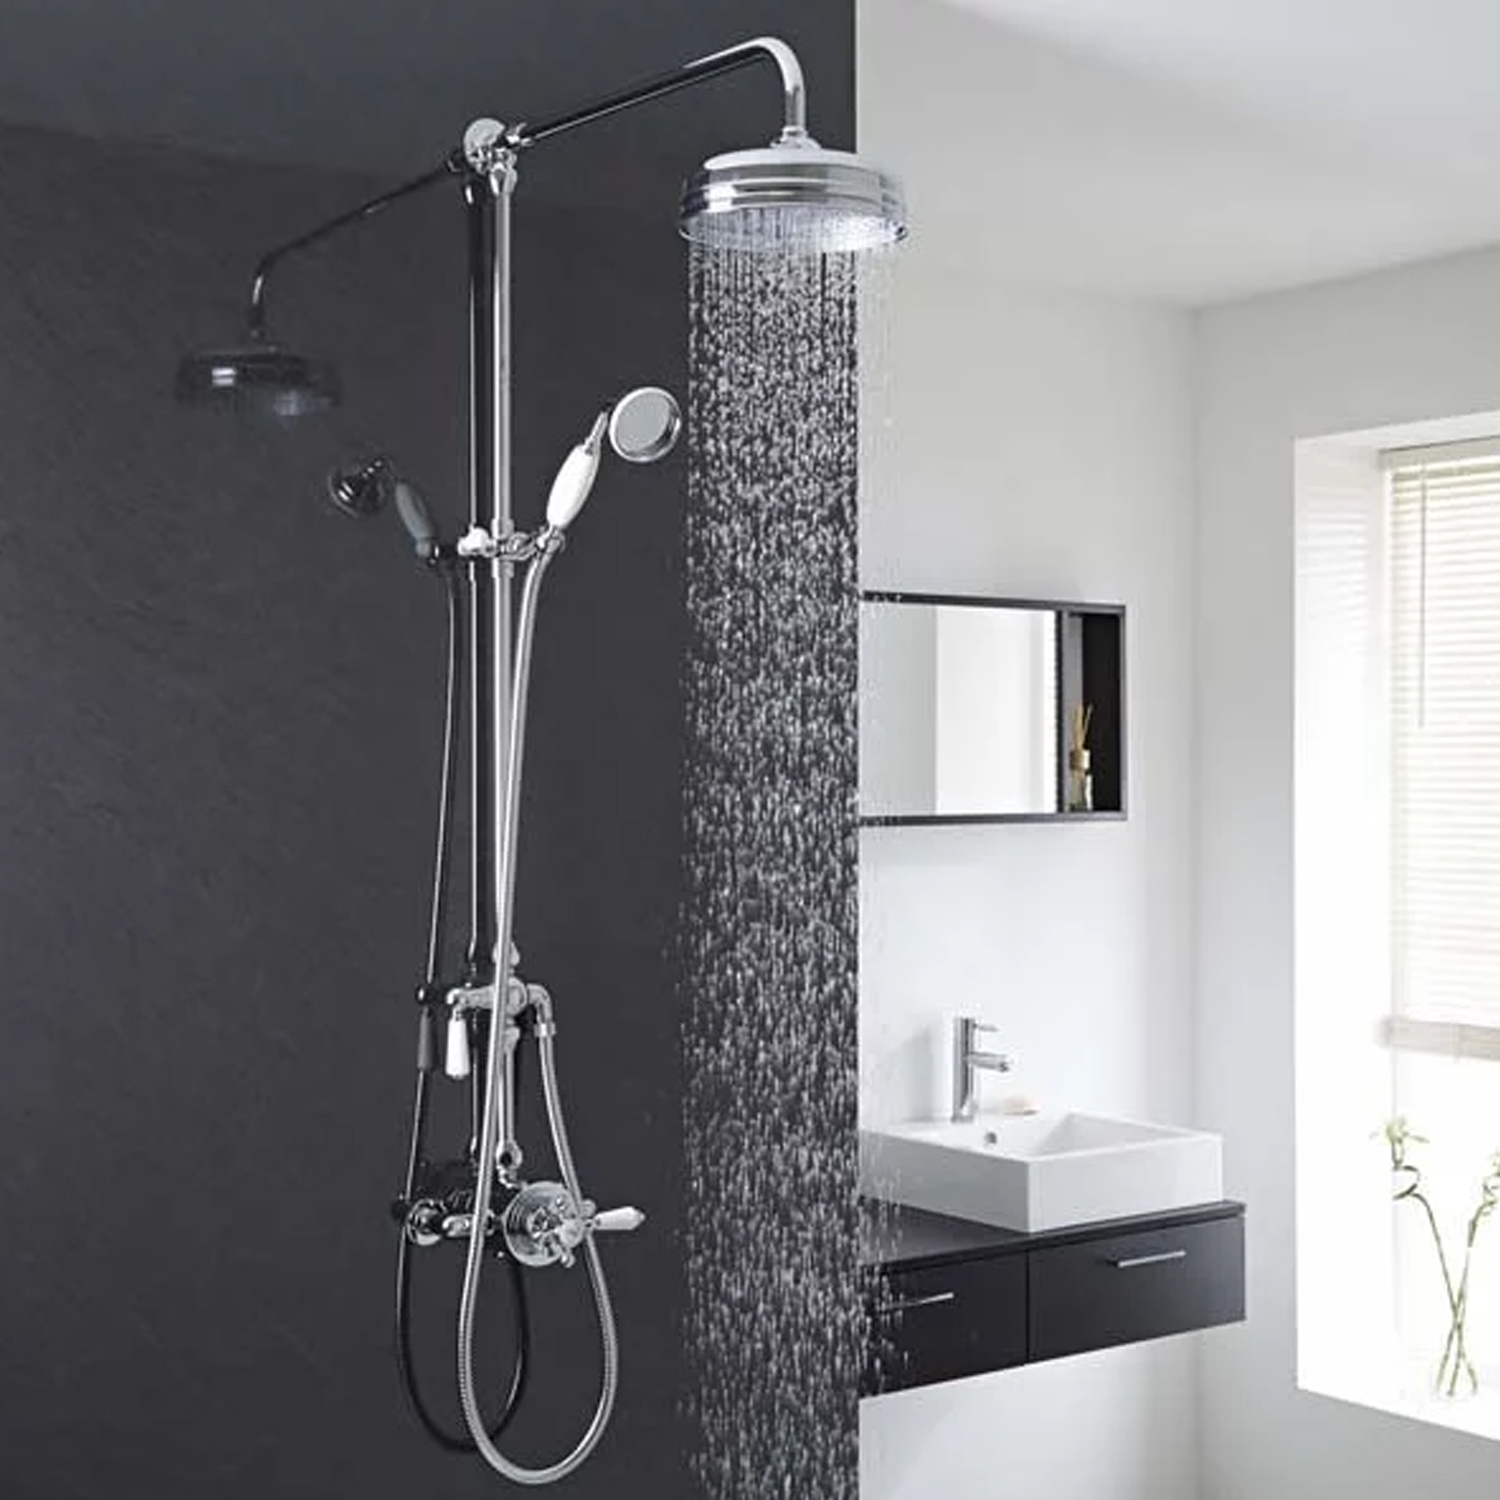 Hudson Reed Victorian Grand Shower Riser Kit with Diverter, Fixed Shower Head, Handset, Chrome-3